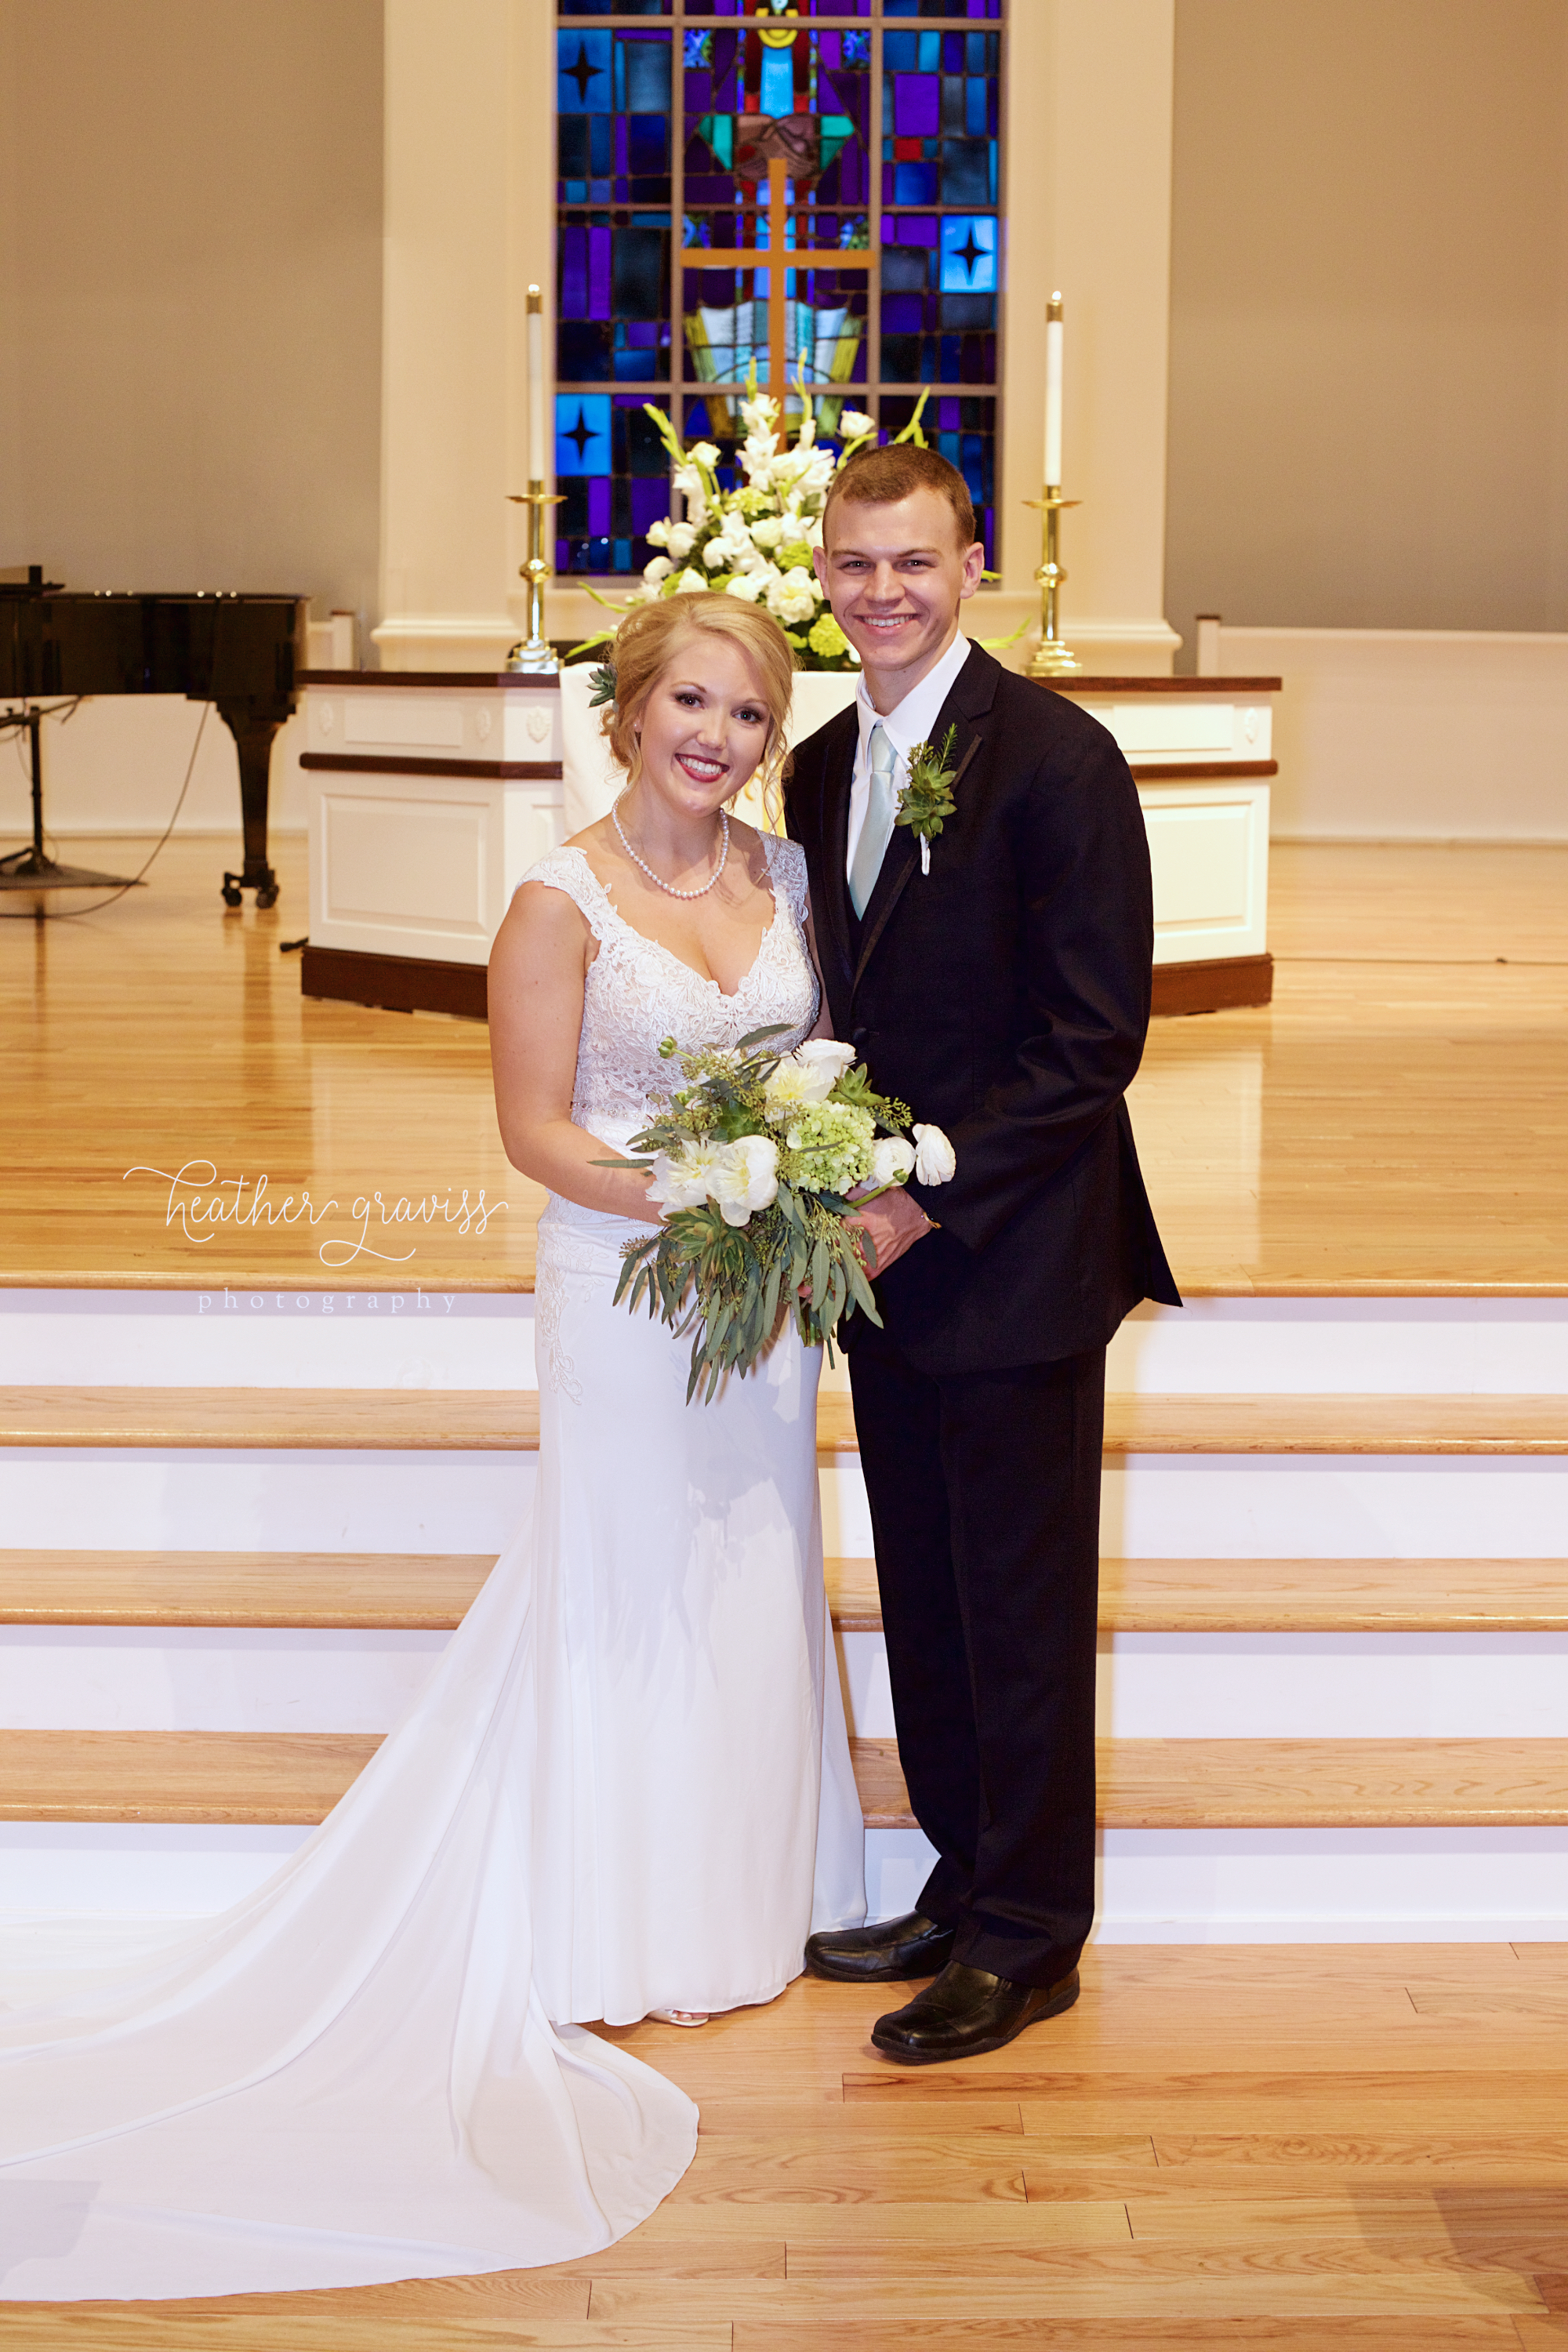 nashville middle tn wedding 107.jpg